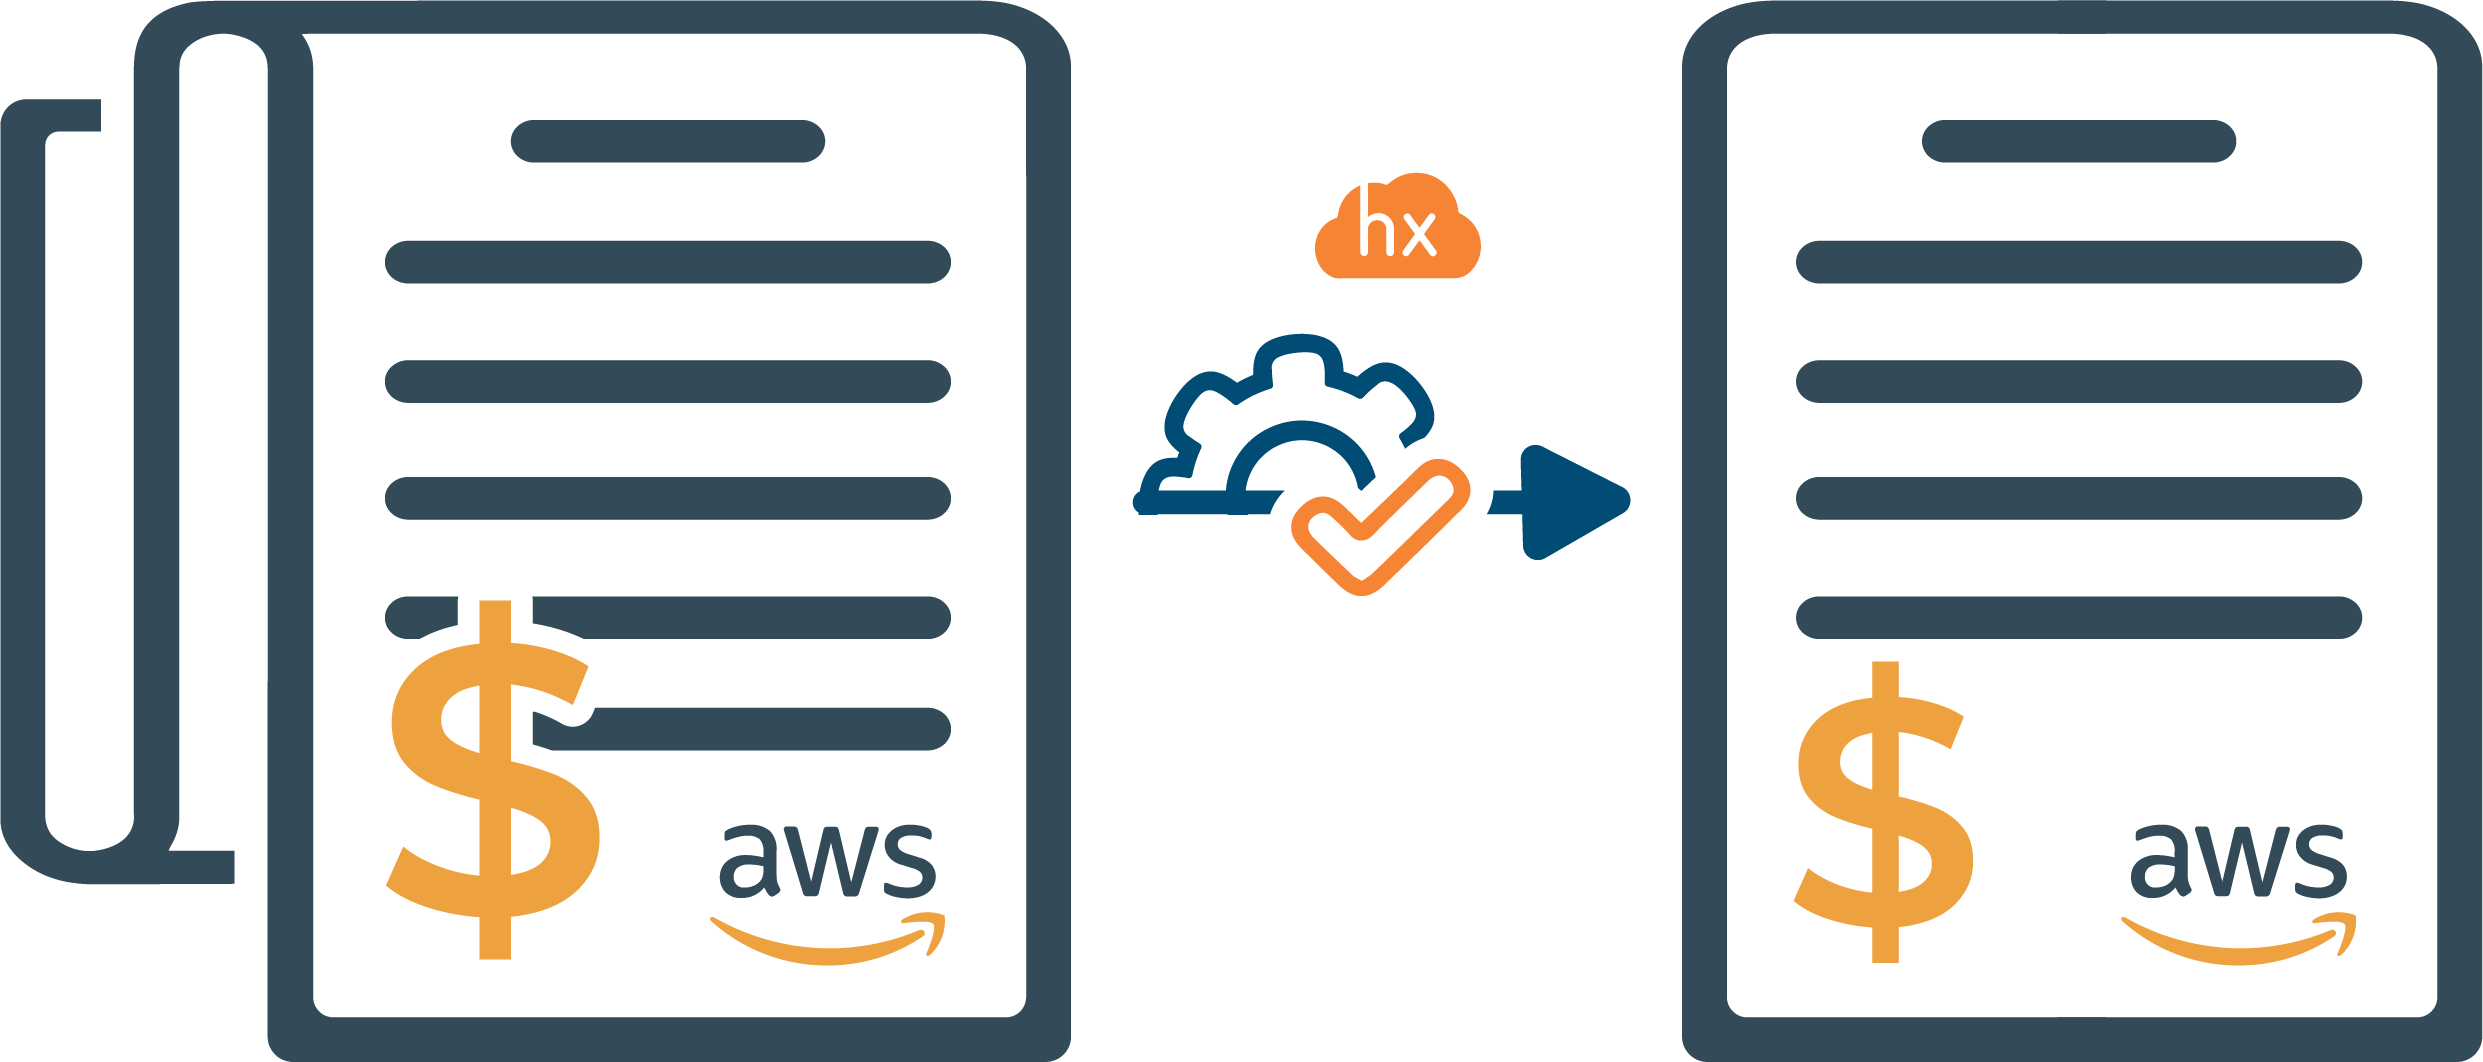 AWS-bill-reduction.png